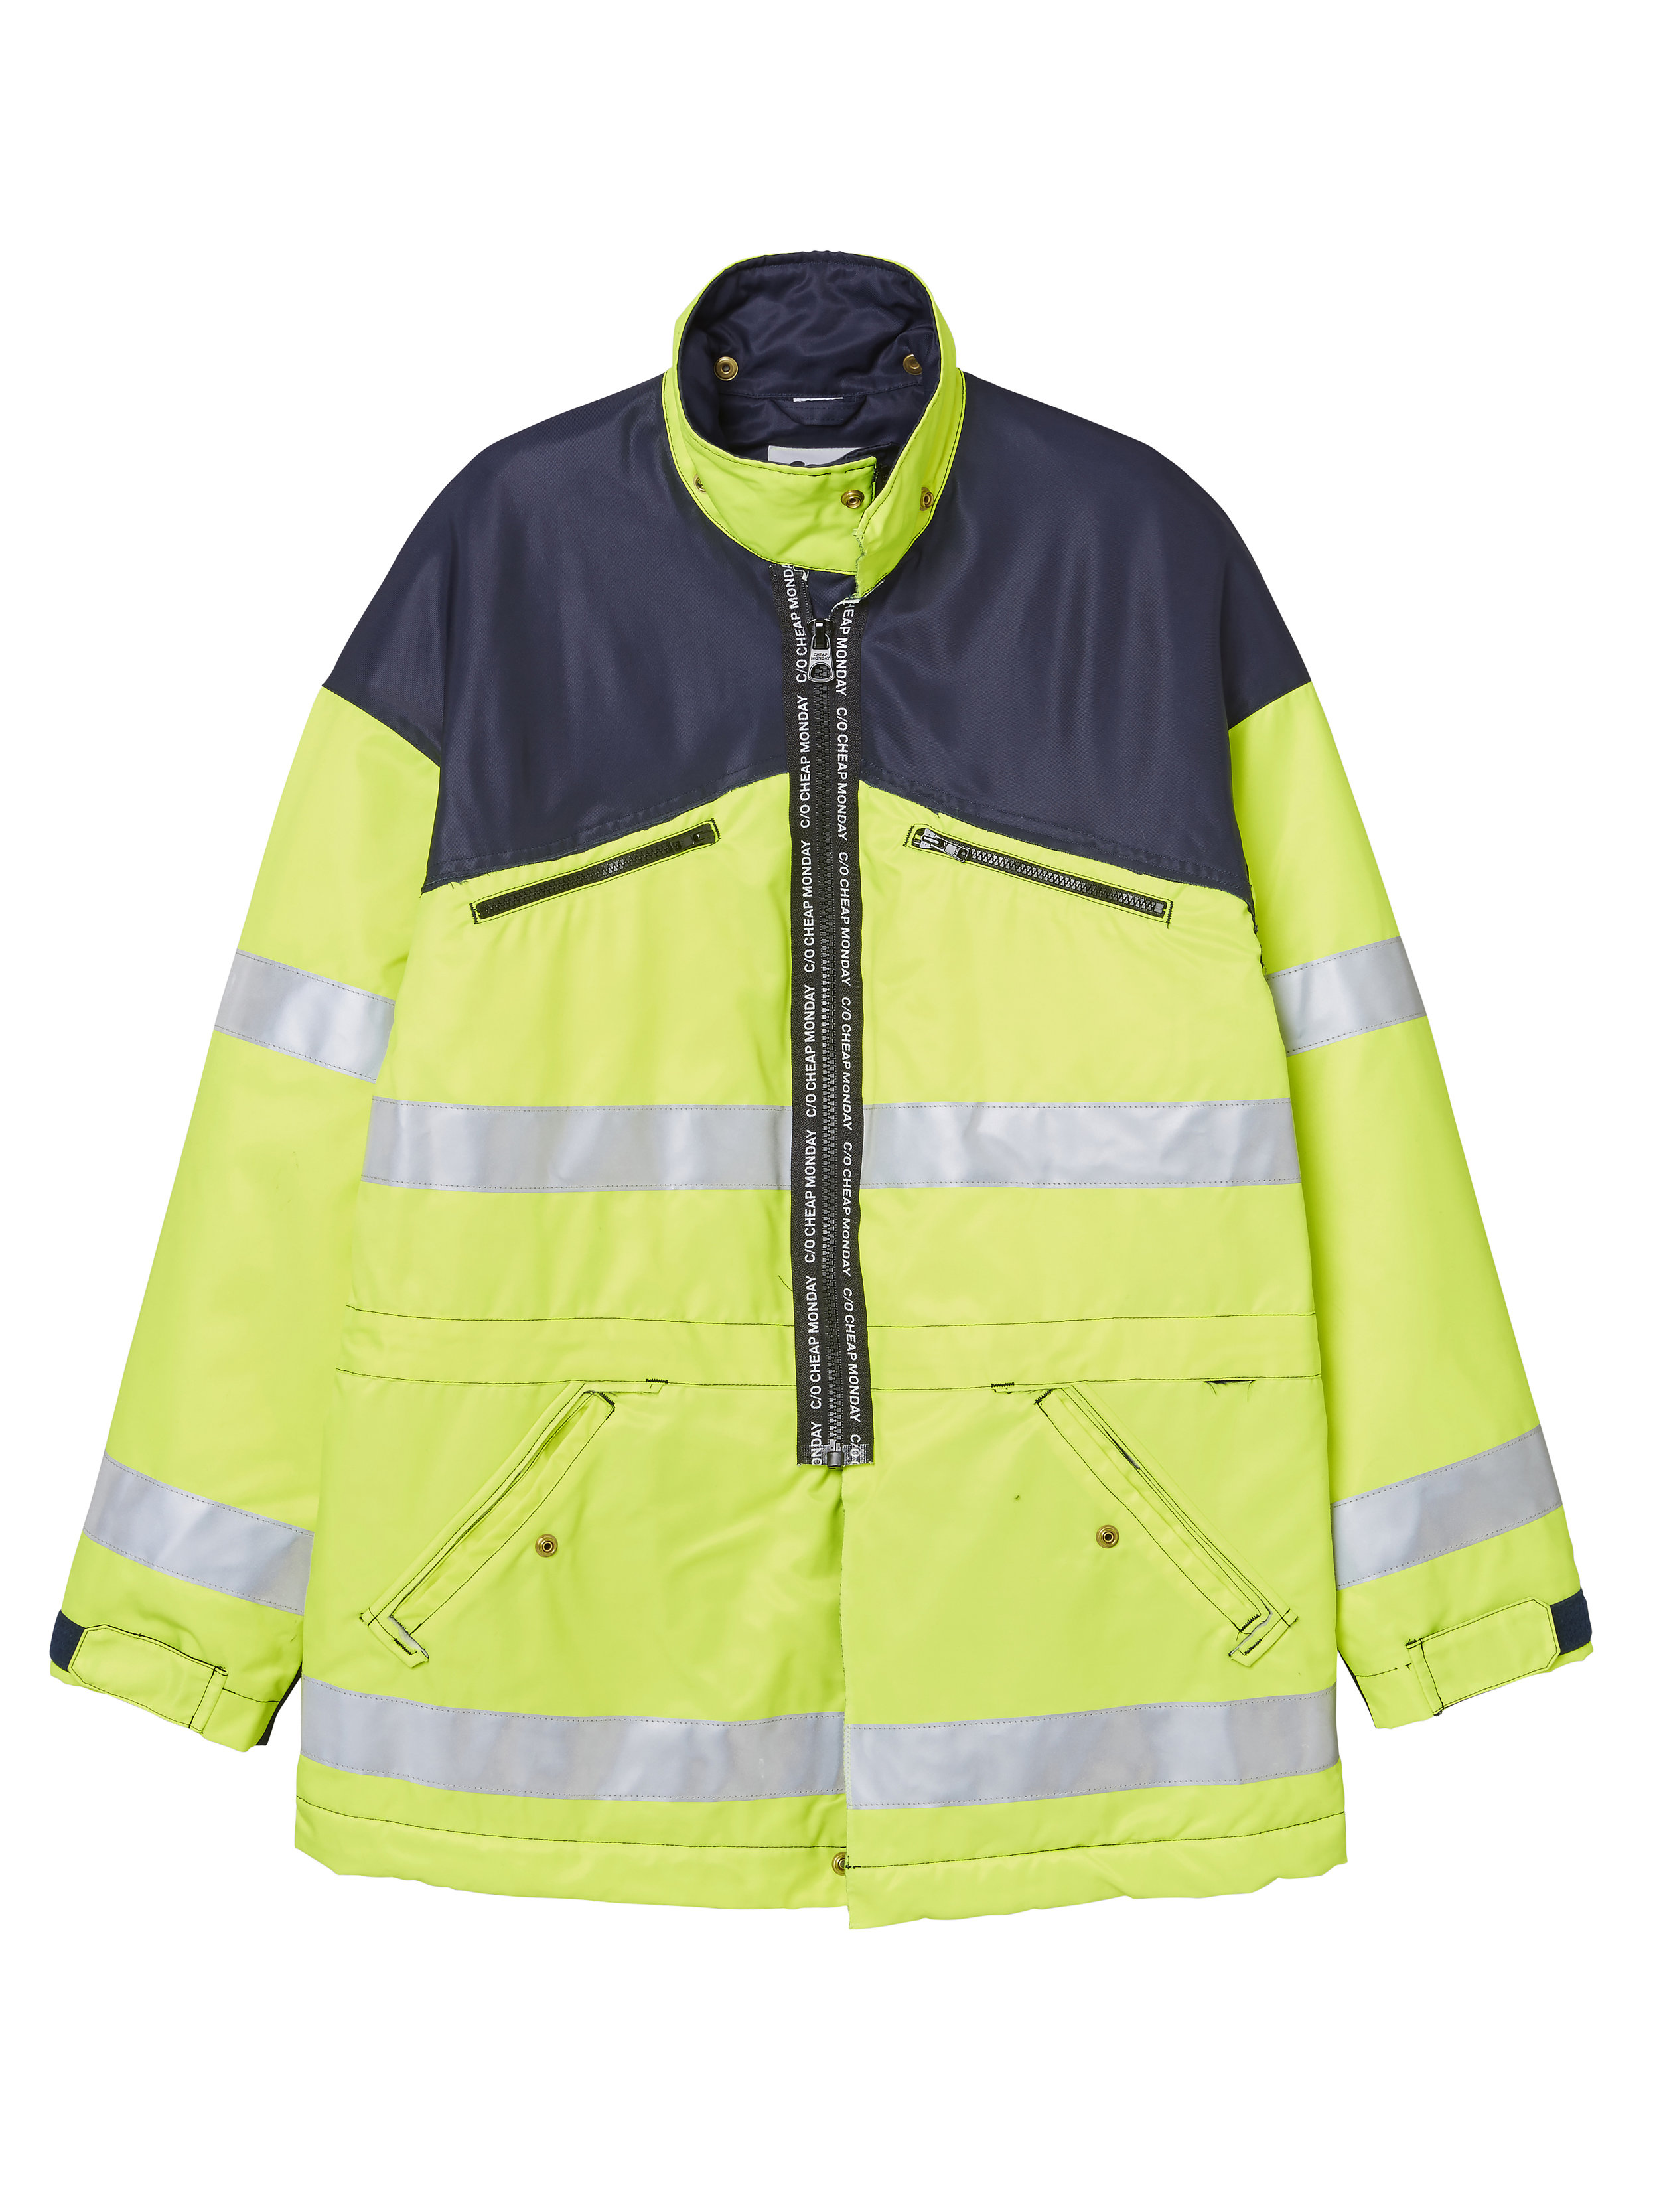 0643914_PROTECTION_JACKET_Neon_green2.jpg